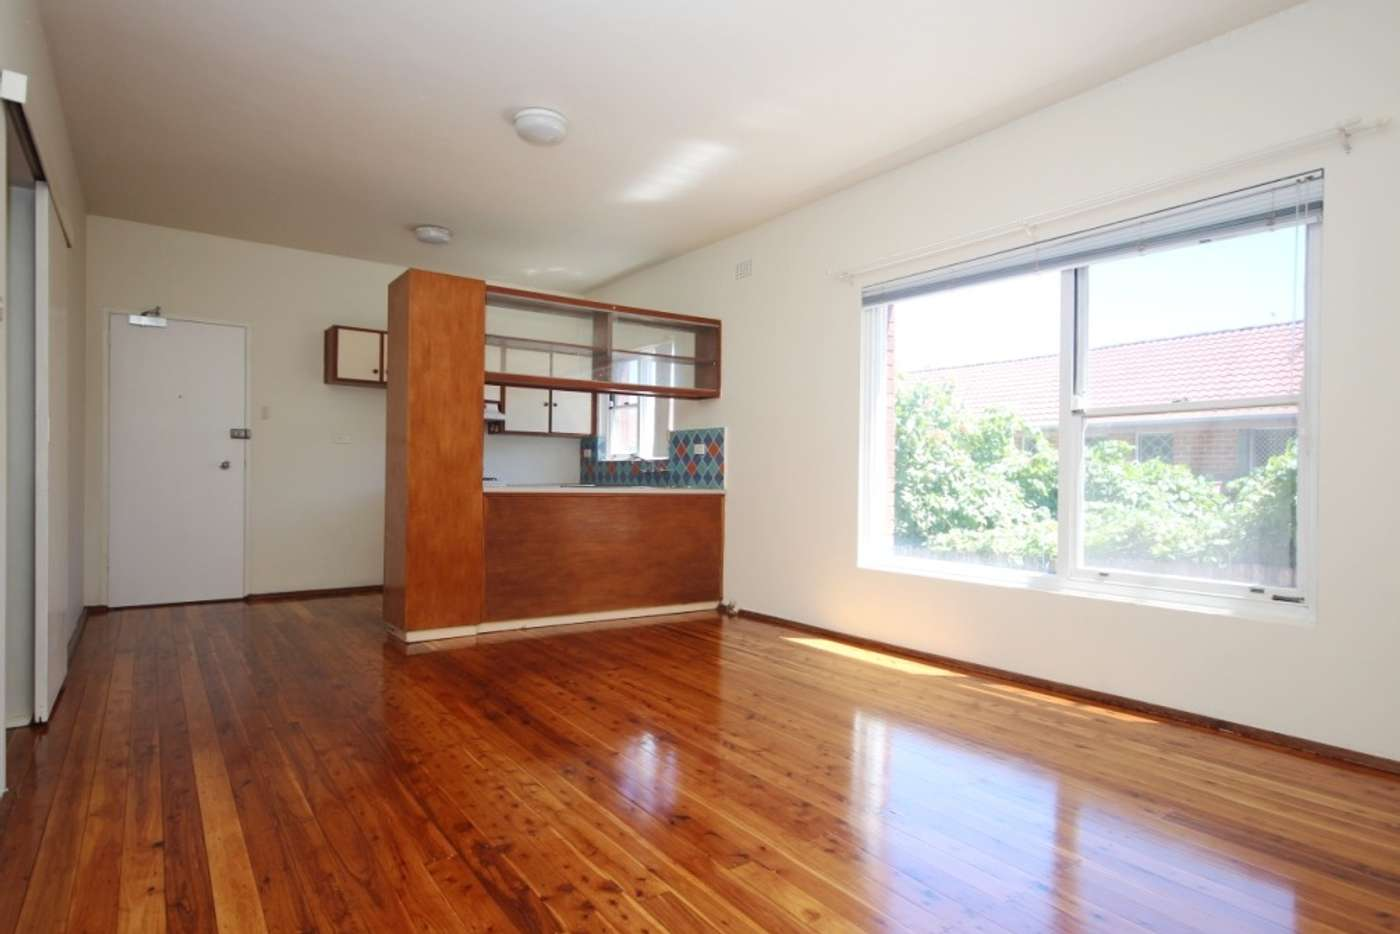 Main view of Homely unit listing, 4/14 Swete Street, Lidcombe NSW 2141